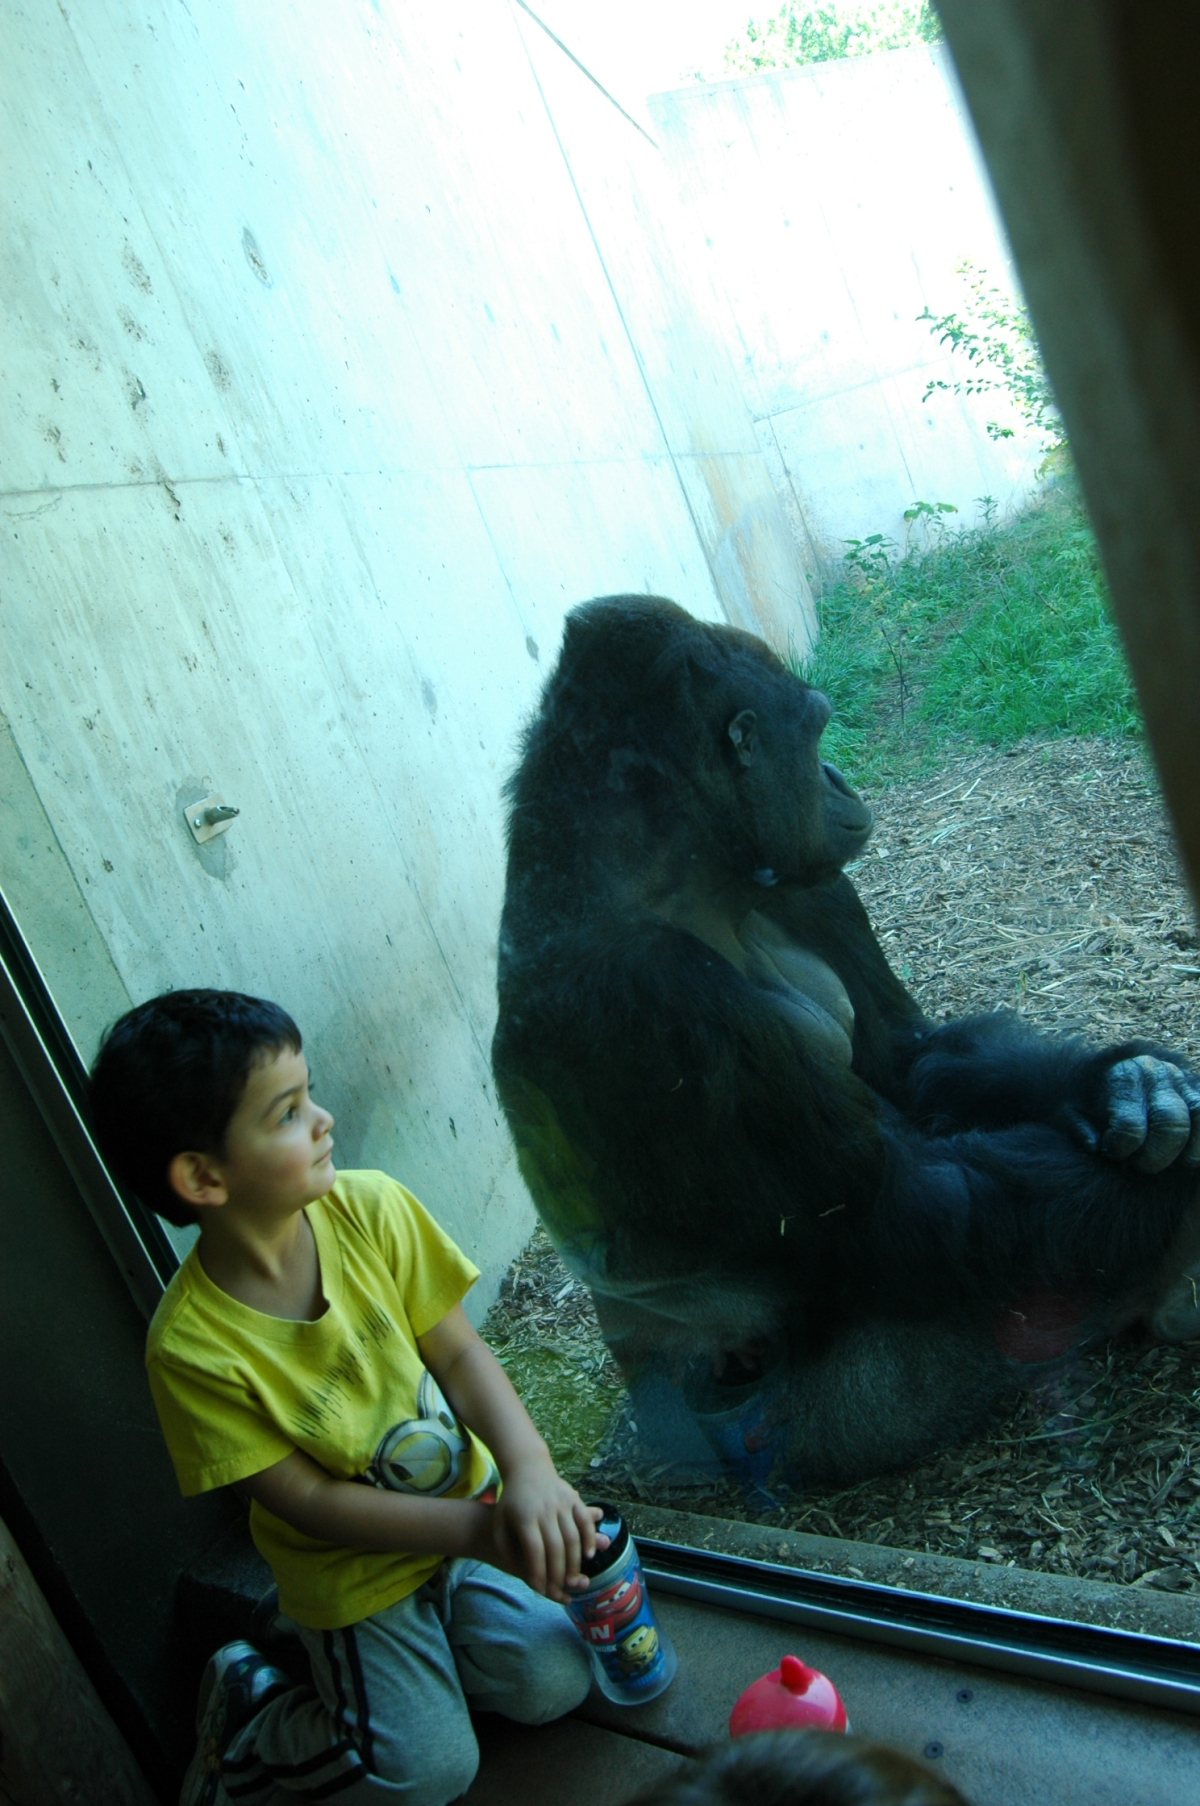 Imitating the gorilla behind the glass